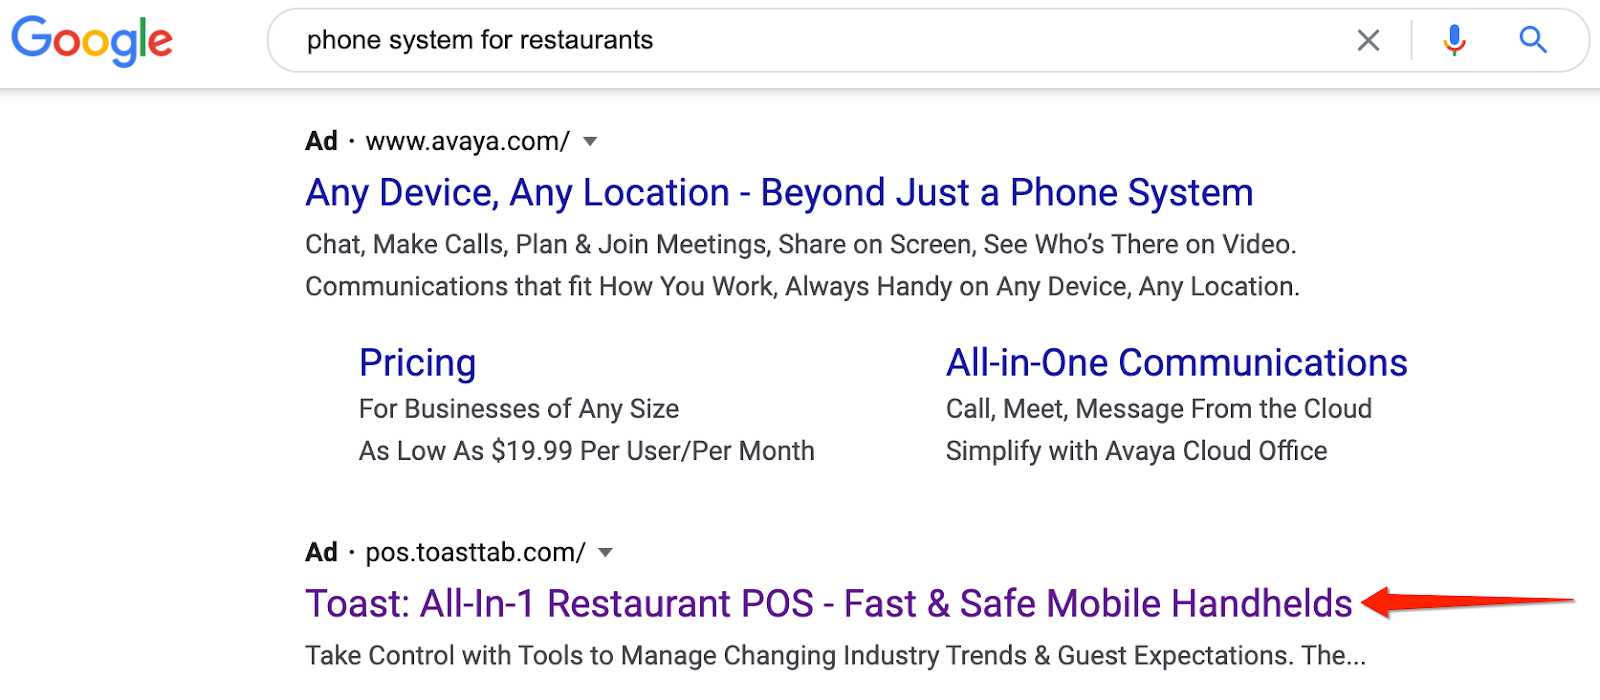 Search results for restaurant telephone systems